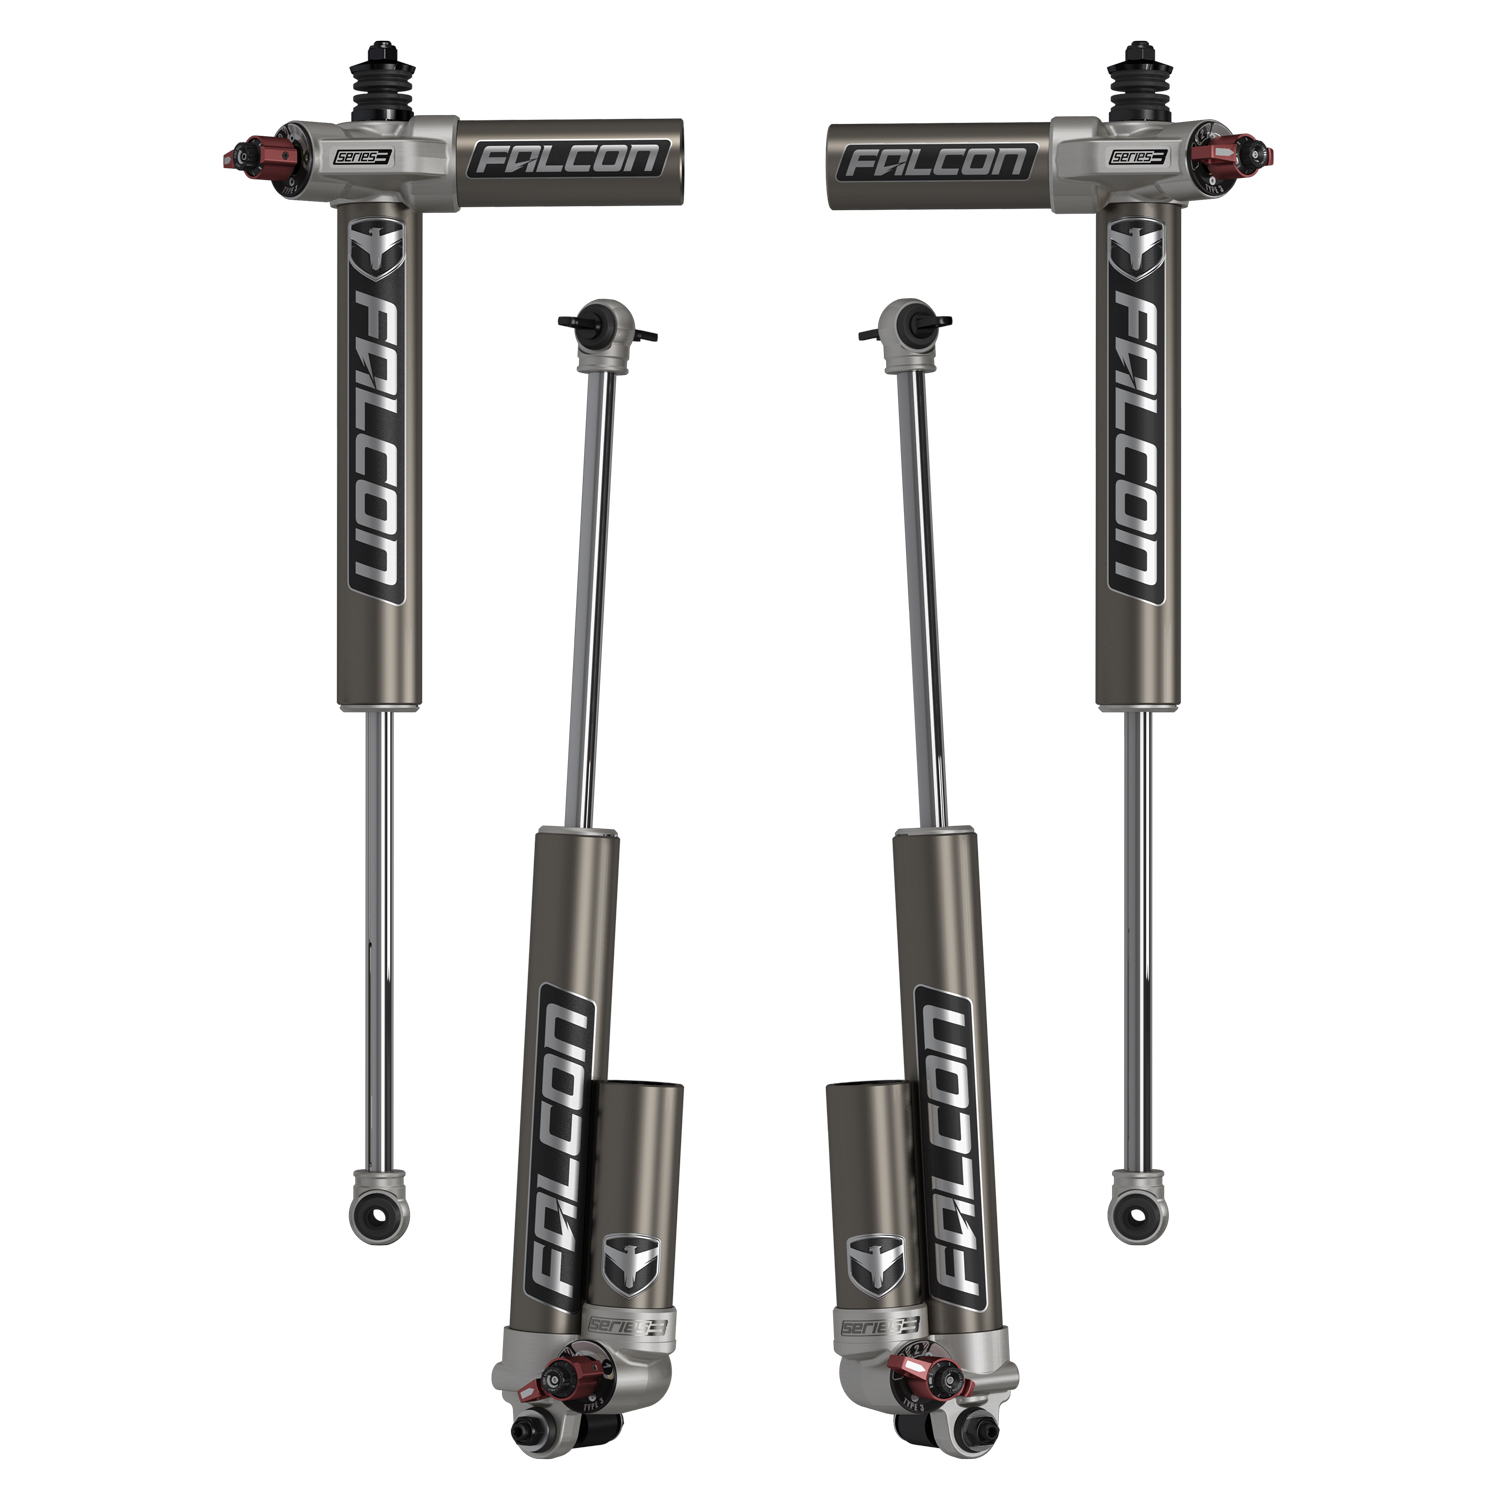 Teraflex Falcon Series 3.3 Adjustable Piggyback Shocks Front & Rear Kit 3-4.5in Lift - JK 4DR